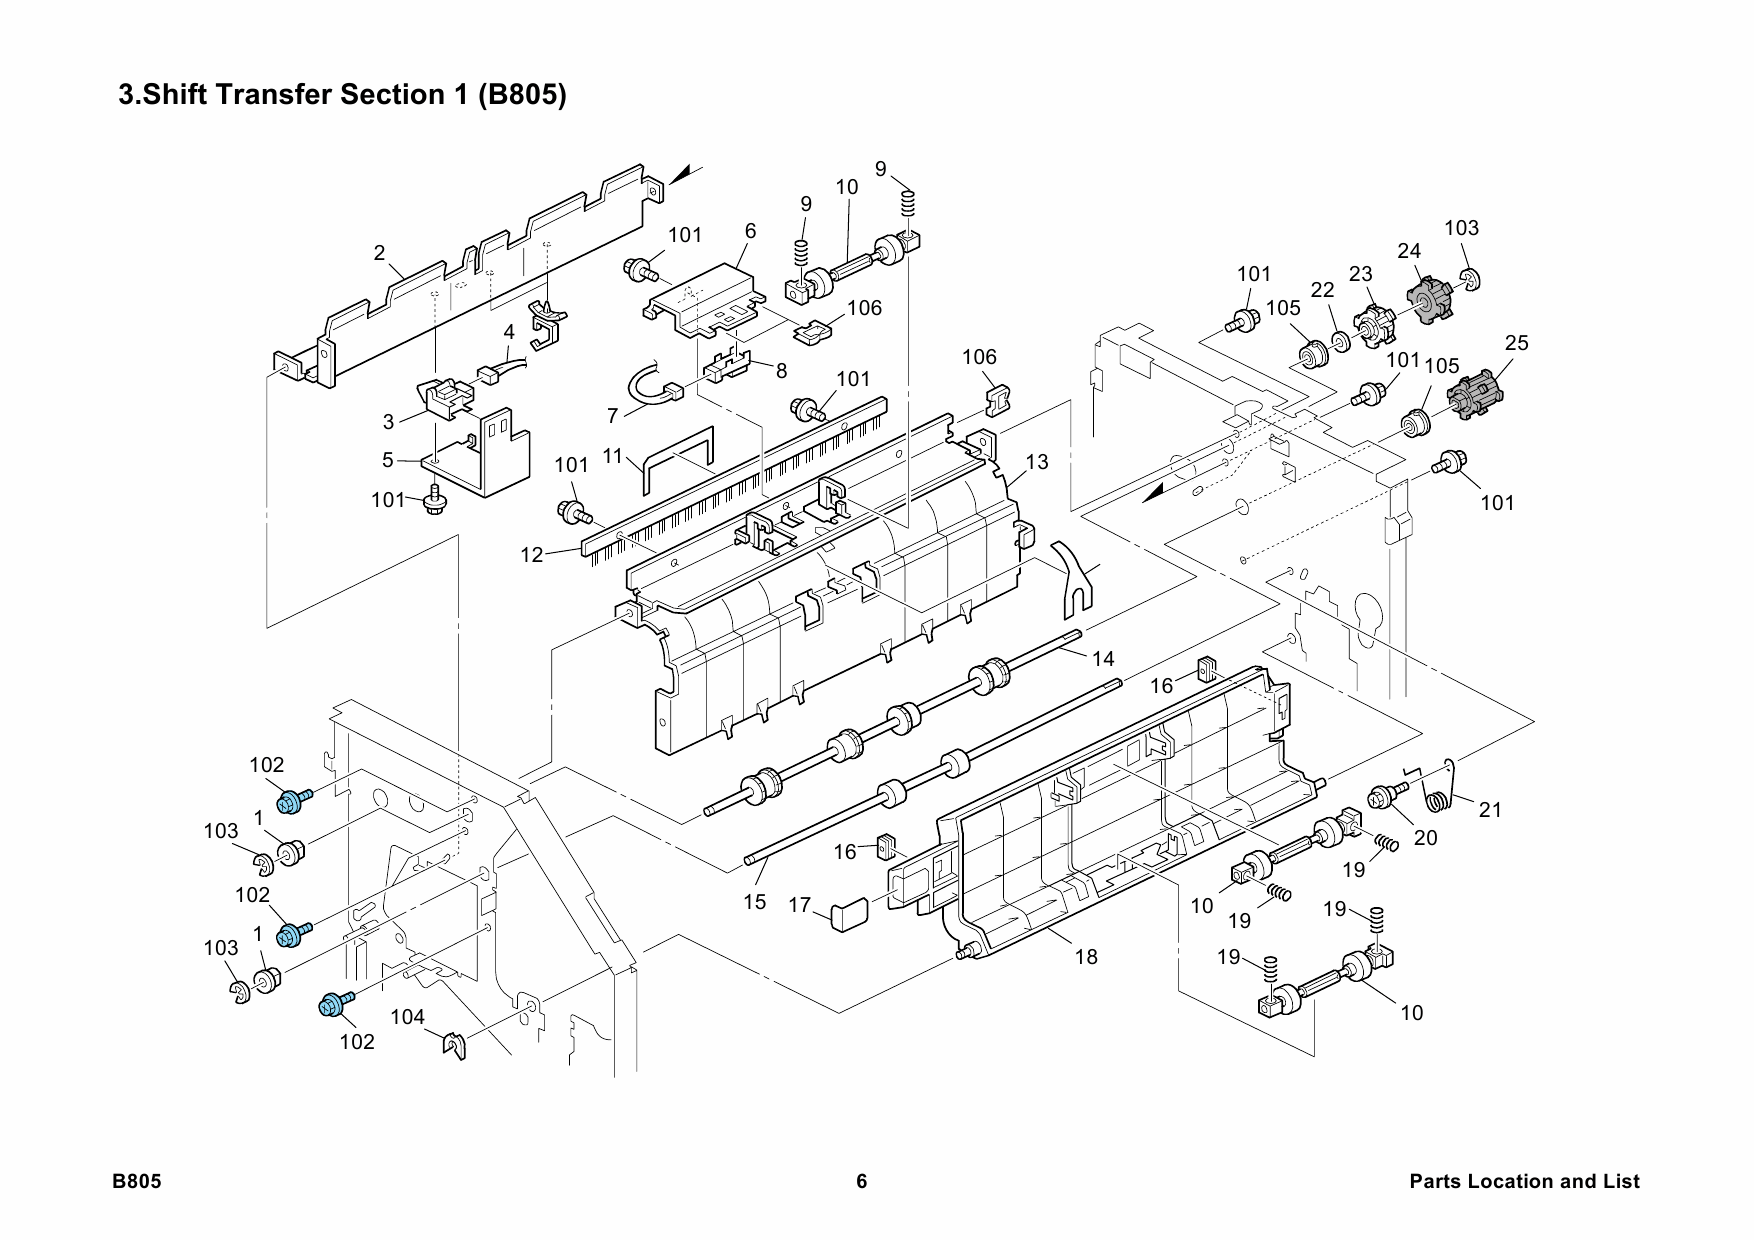 RICOH Options B805 FINISHER-SR3030 Parts Catalog PDF download